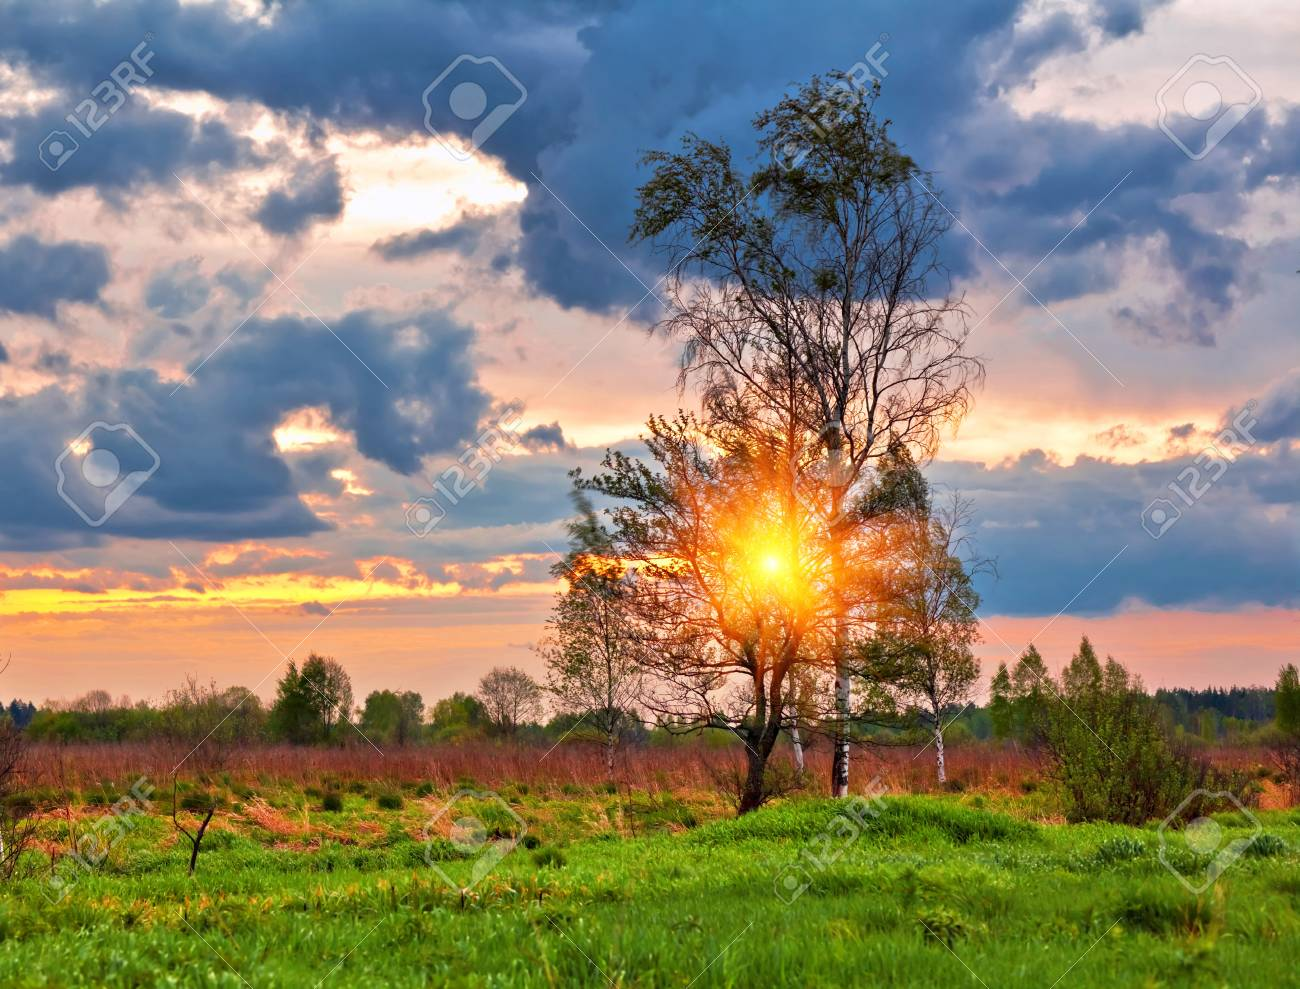 Landscape with coloful sunset in summer field Stock Photo - 10654885